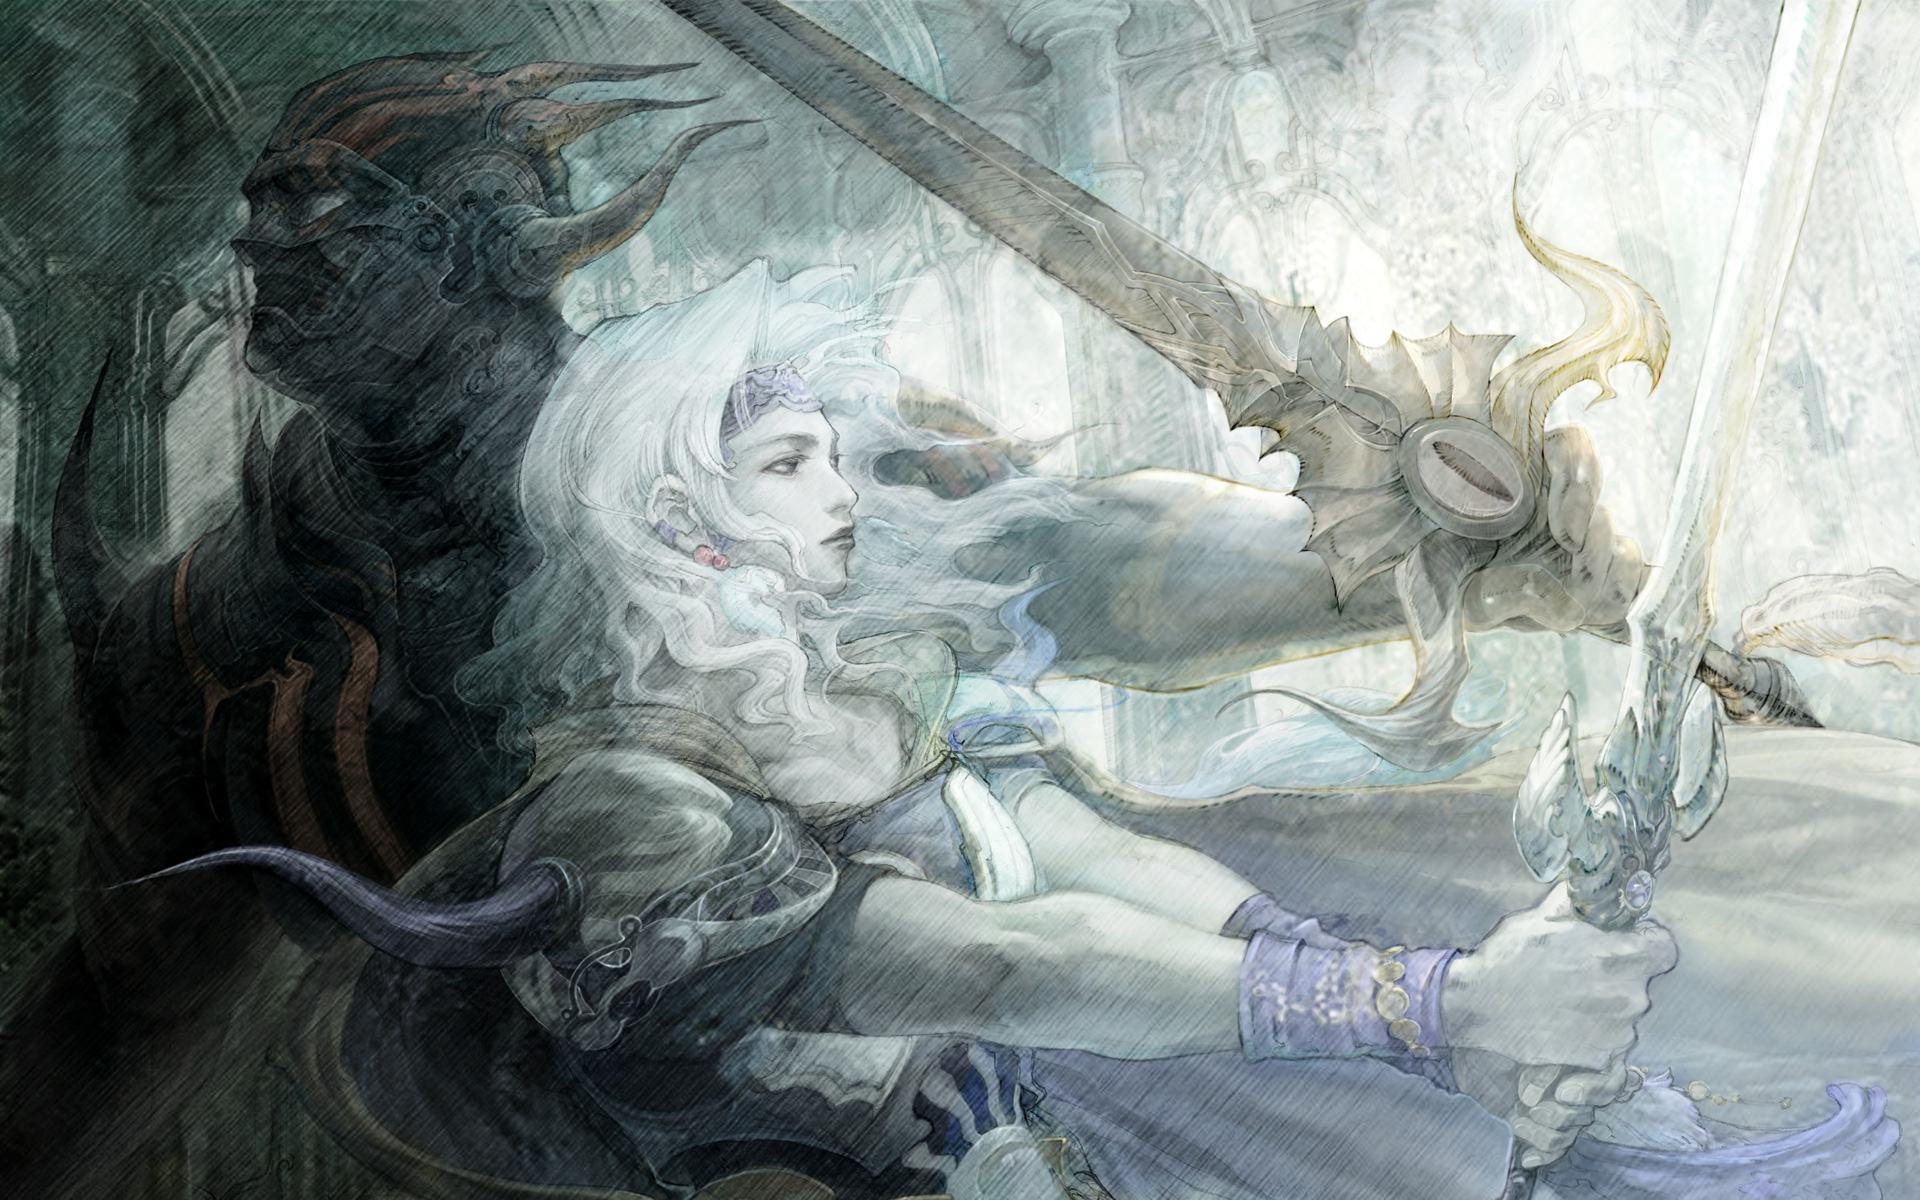 Free Final Fantasy IV Wallpaper in 1920x1200